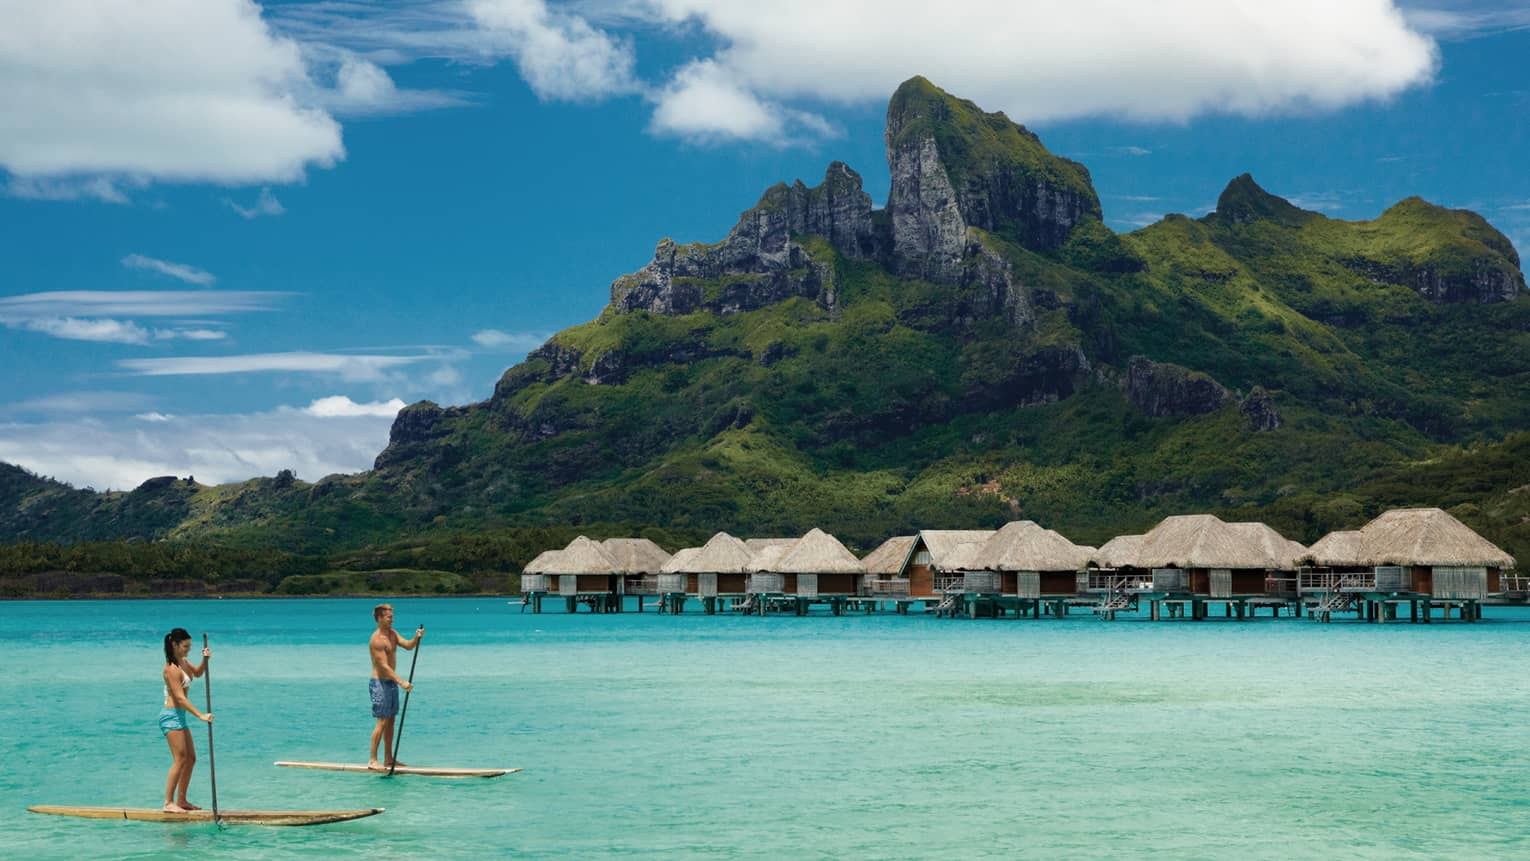 Two guests stand-up paddleboarding in a Bora Bora lagoon